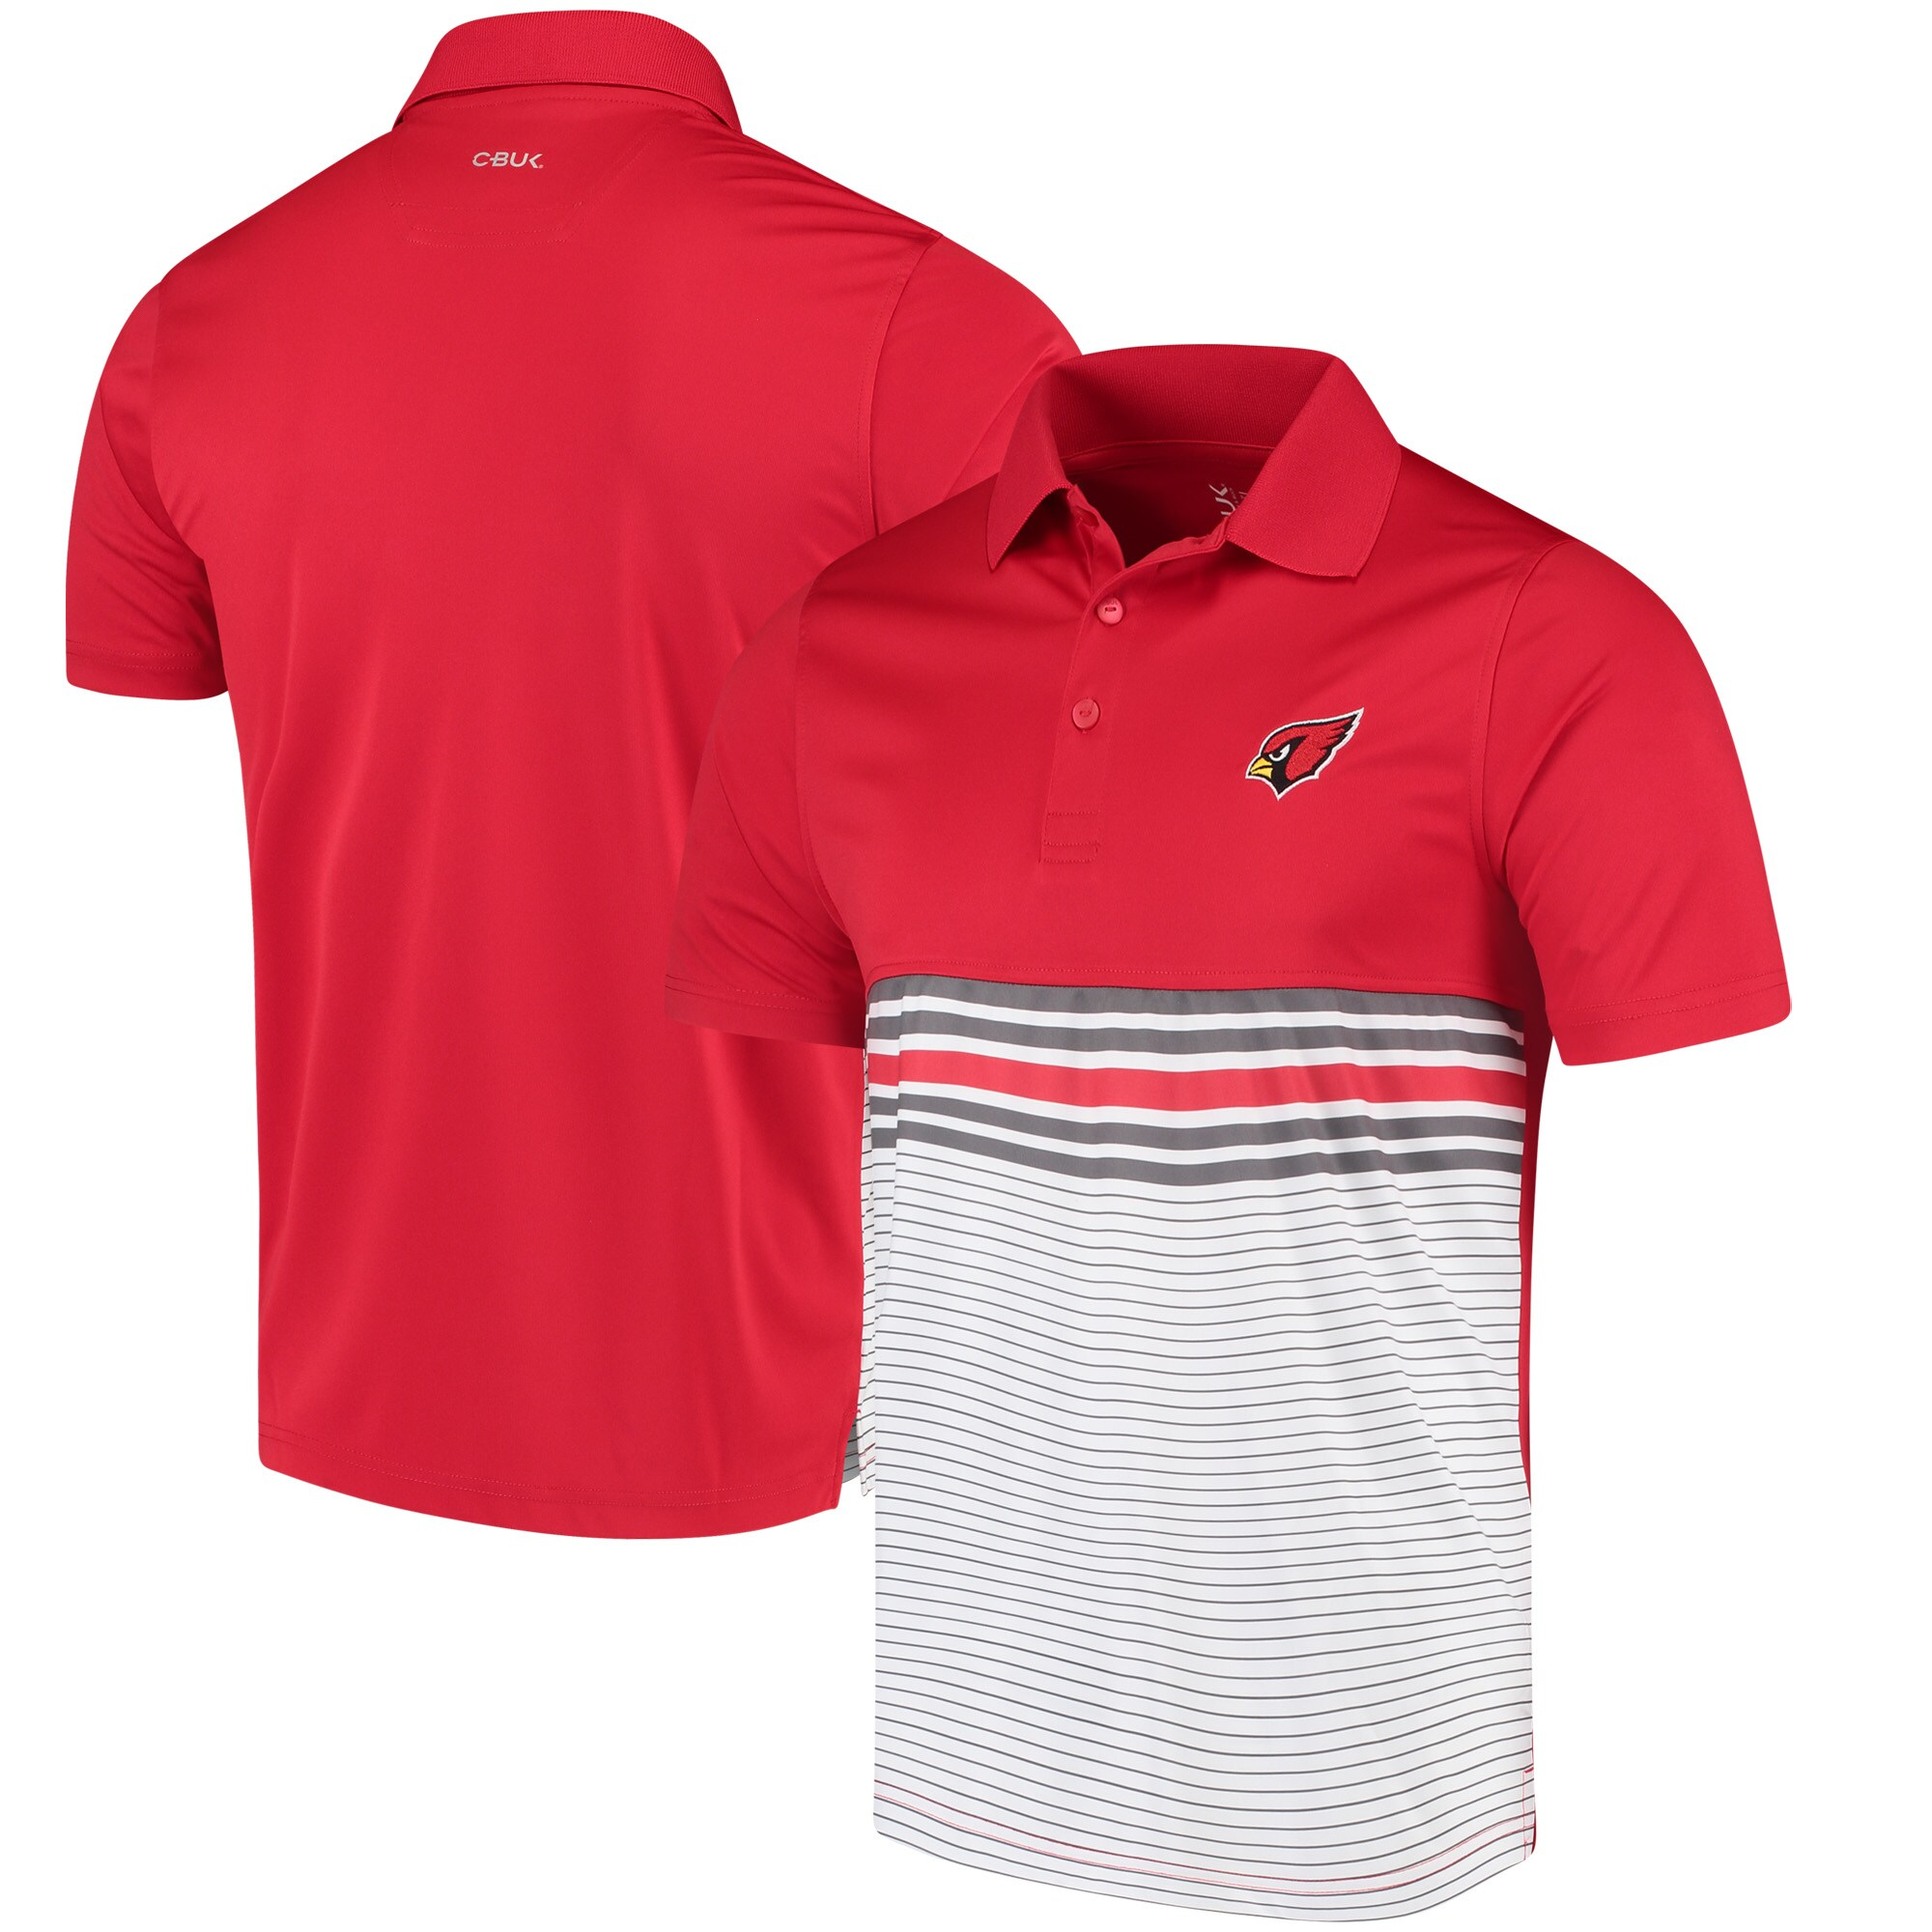 Arizona Cardinals CBUK by Cutter & Buck Heron Lakes Striped Polo - Cardinal